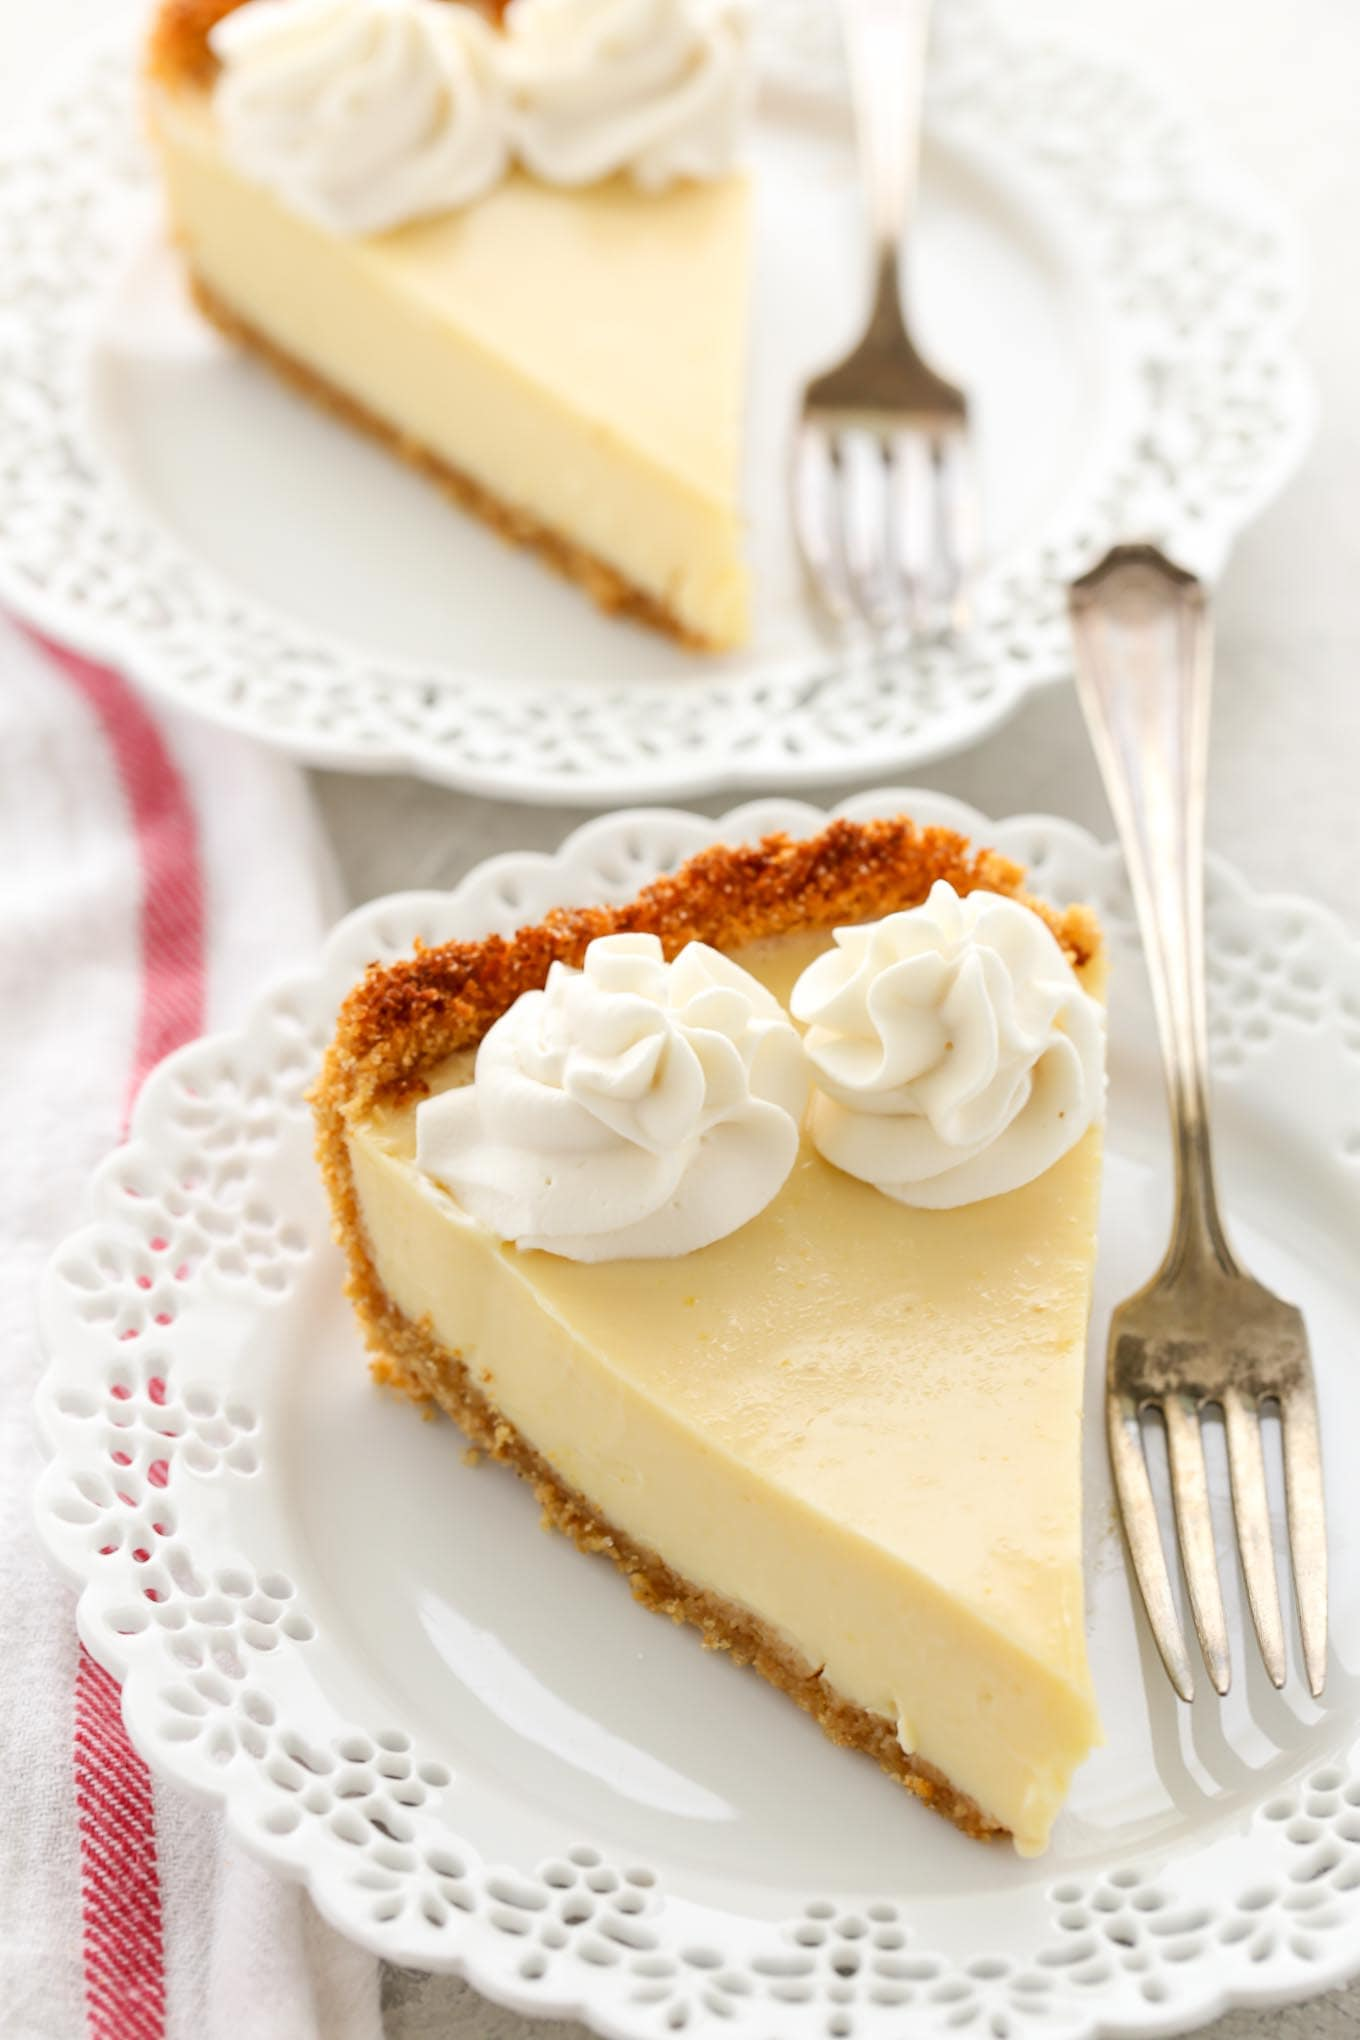 This easy Lemon Pie features a homemade graham cracker crust, a creamy lemon filling, and homemade whipped cream on top. The perfect dessert for lemon lovers!